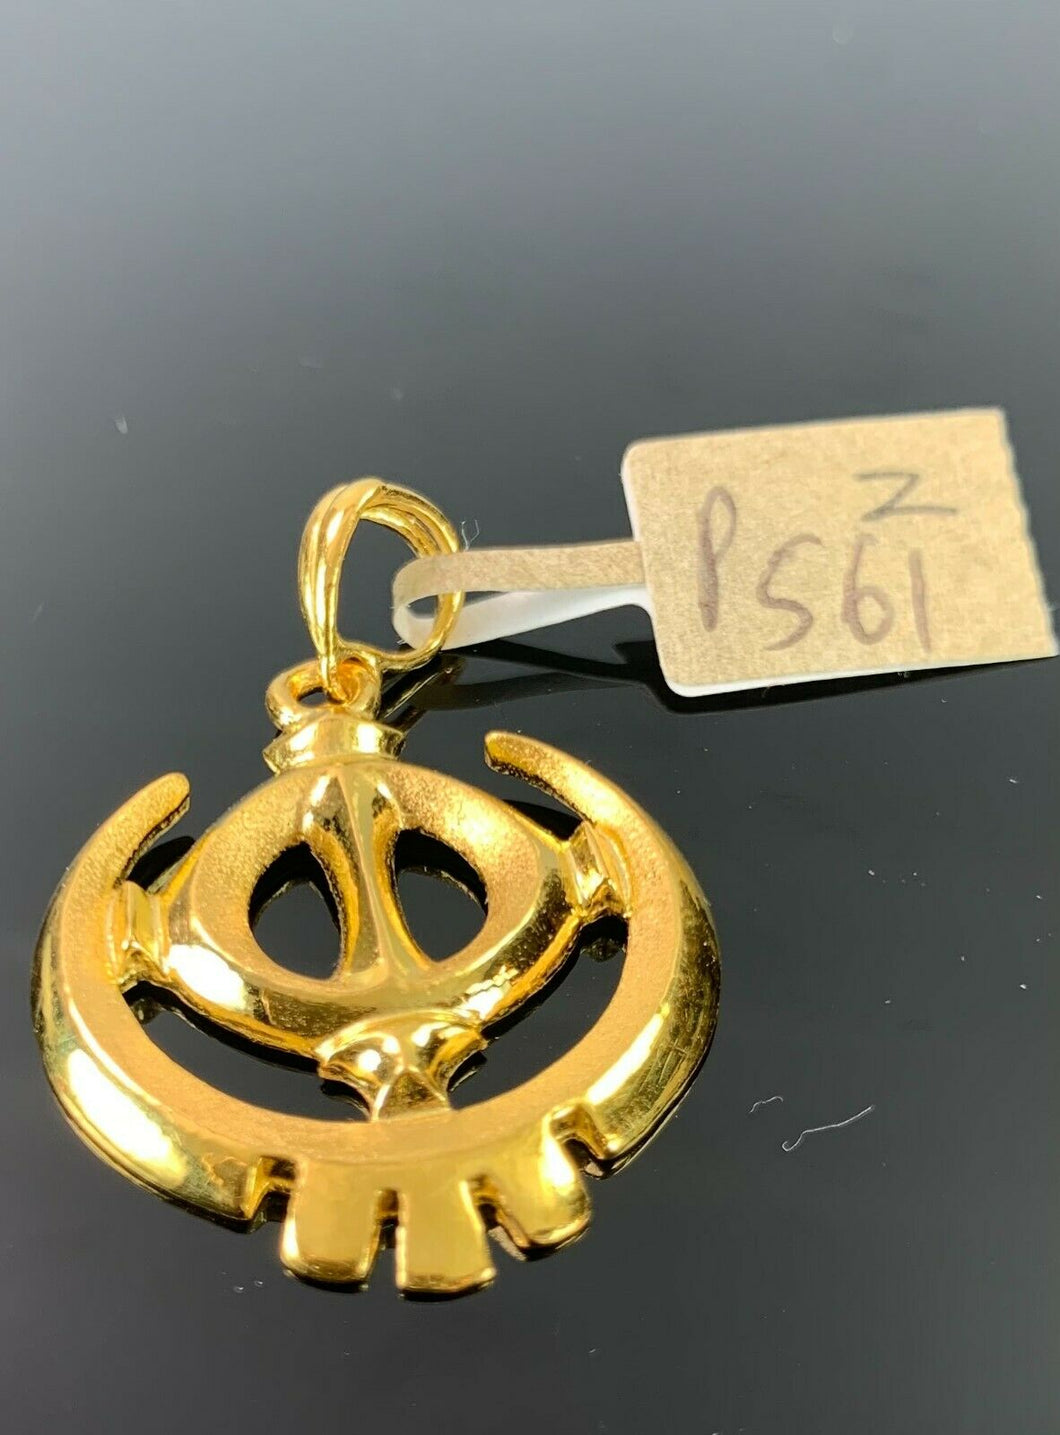 22k Pendant Solid Gold Elegant Simple Religious Sikh Khanda Cut Out Design P561z - Royal Dubai Jewellers